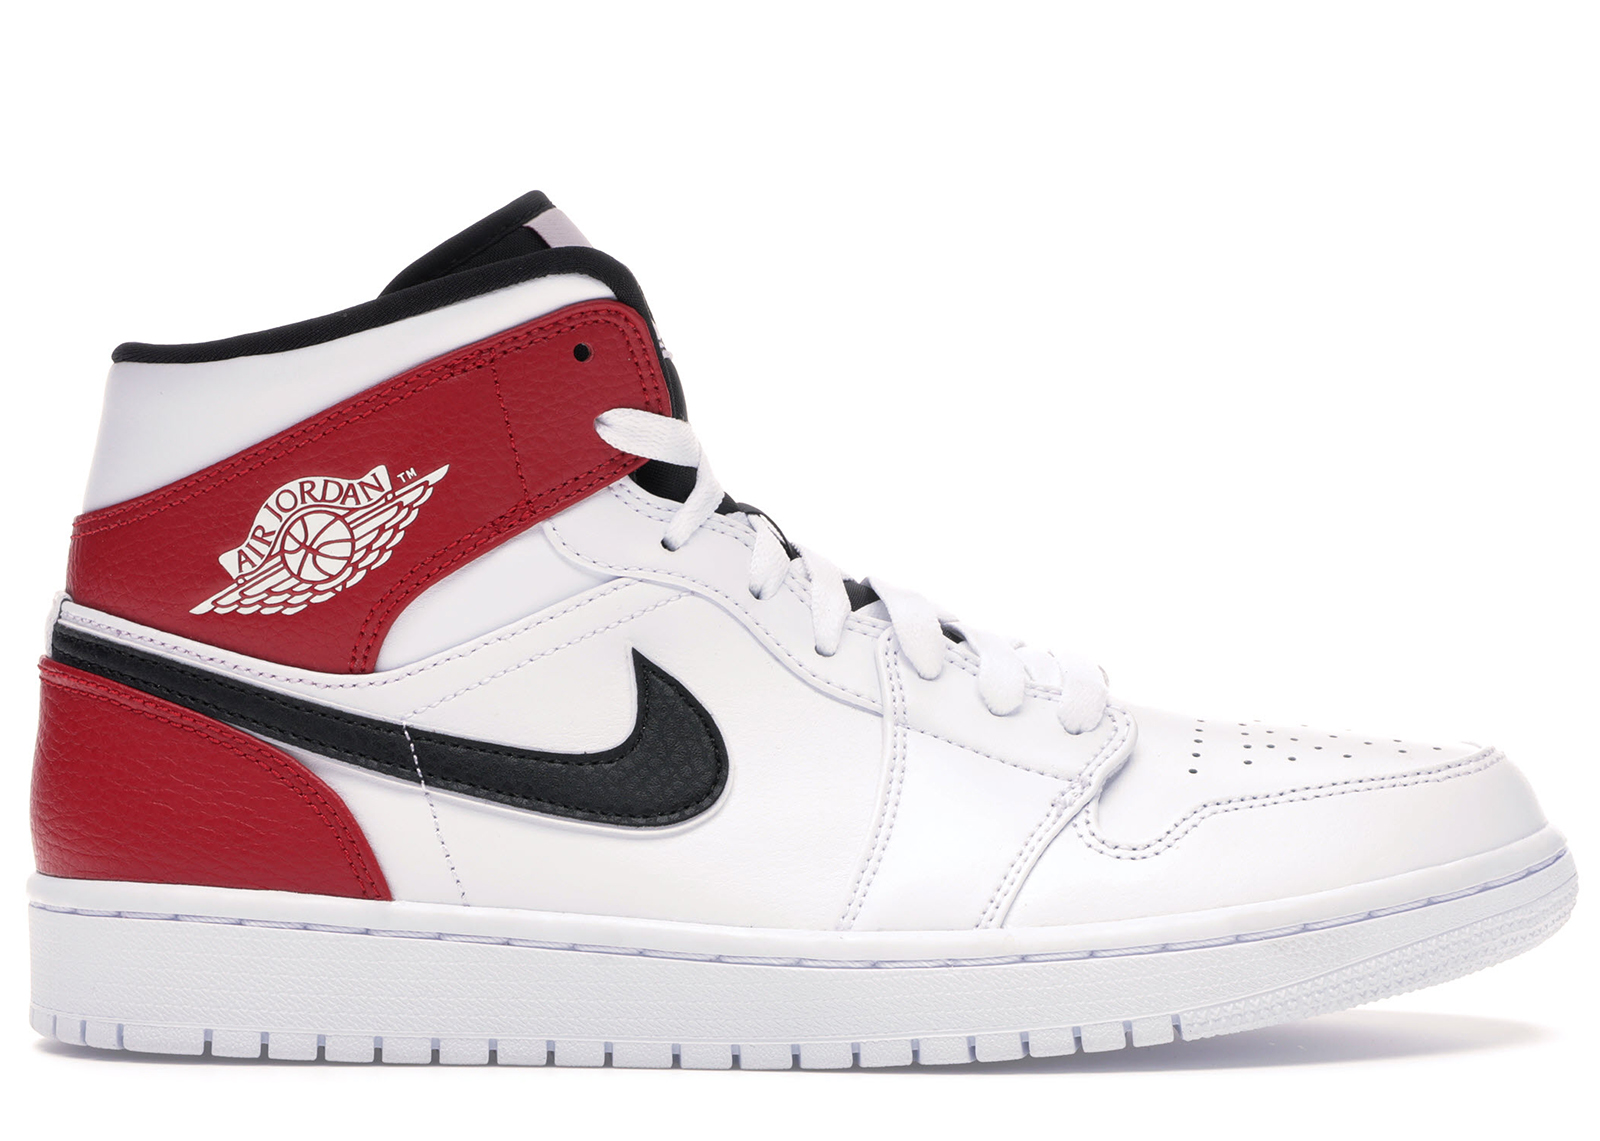 Jordan 1 Mid White Black Gym Red